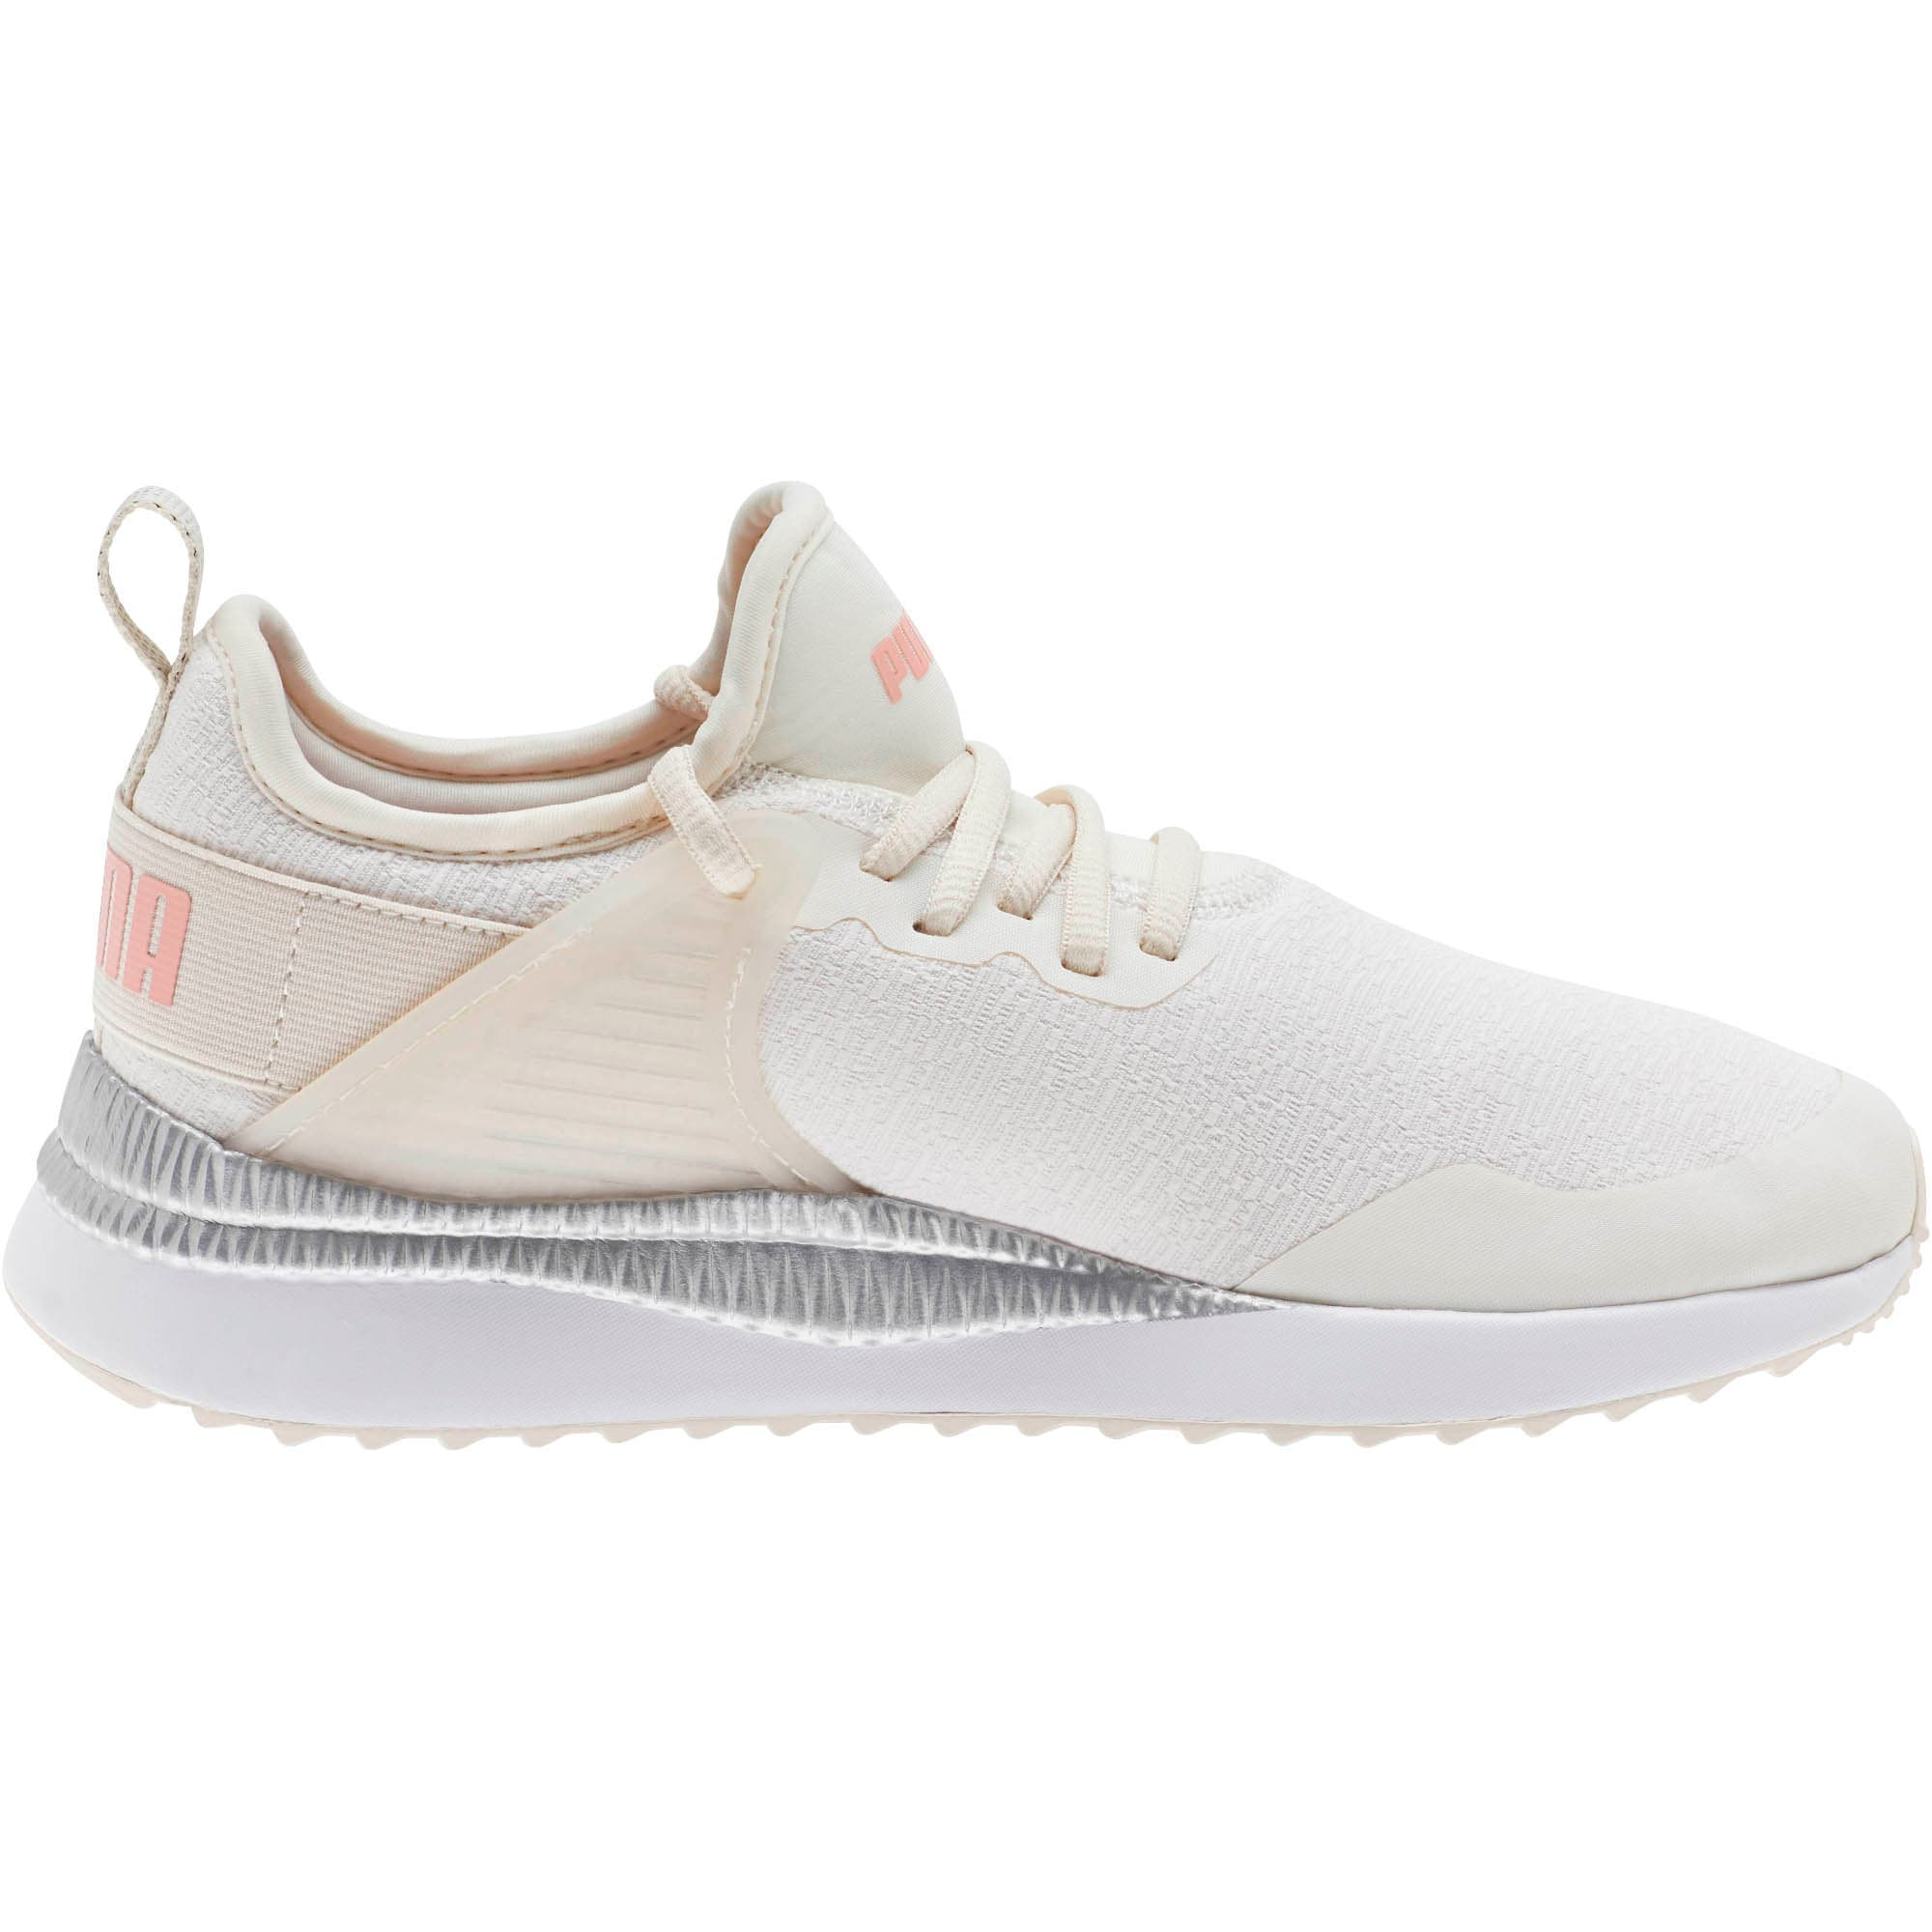 Thumbnail 4 of Pacer Next Cage Glitter Women's Sneakers, Pastel Parchment-Bridal Rose, medium